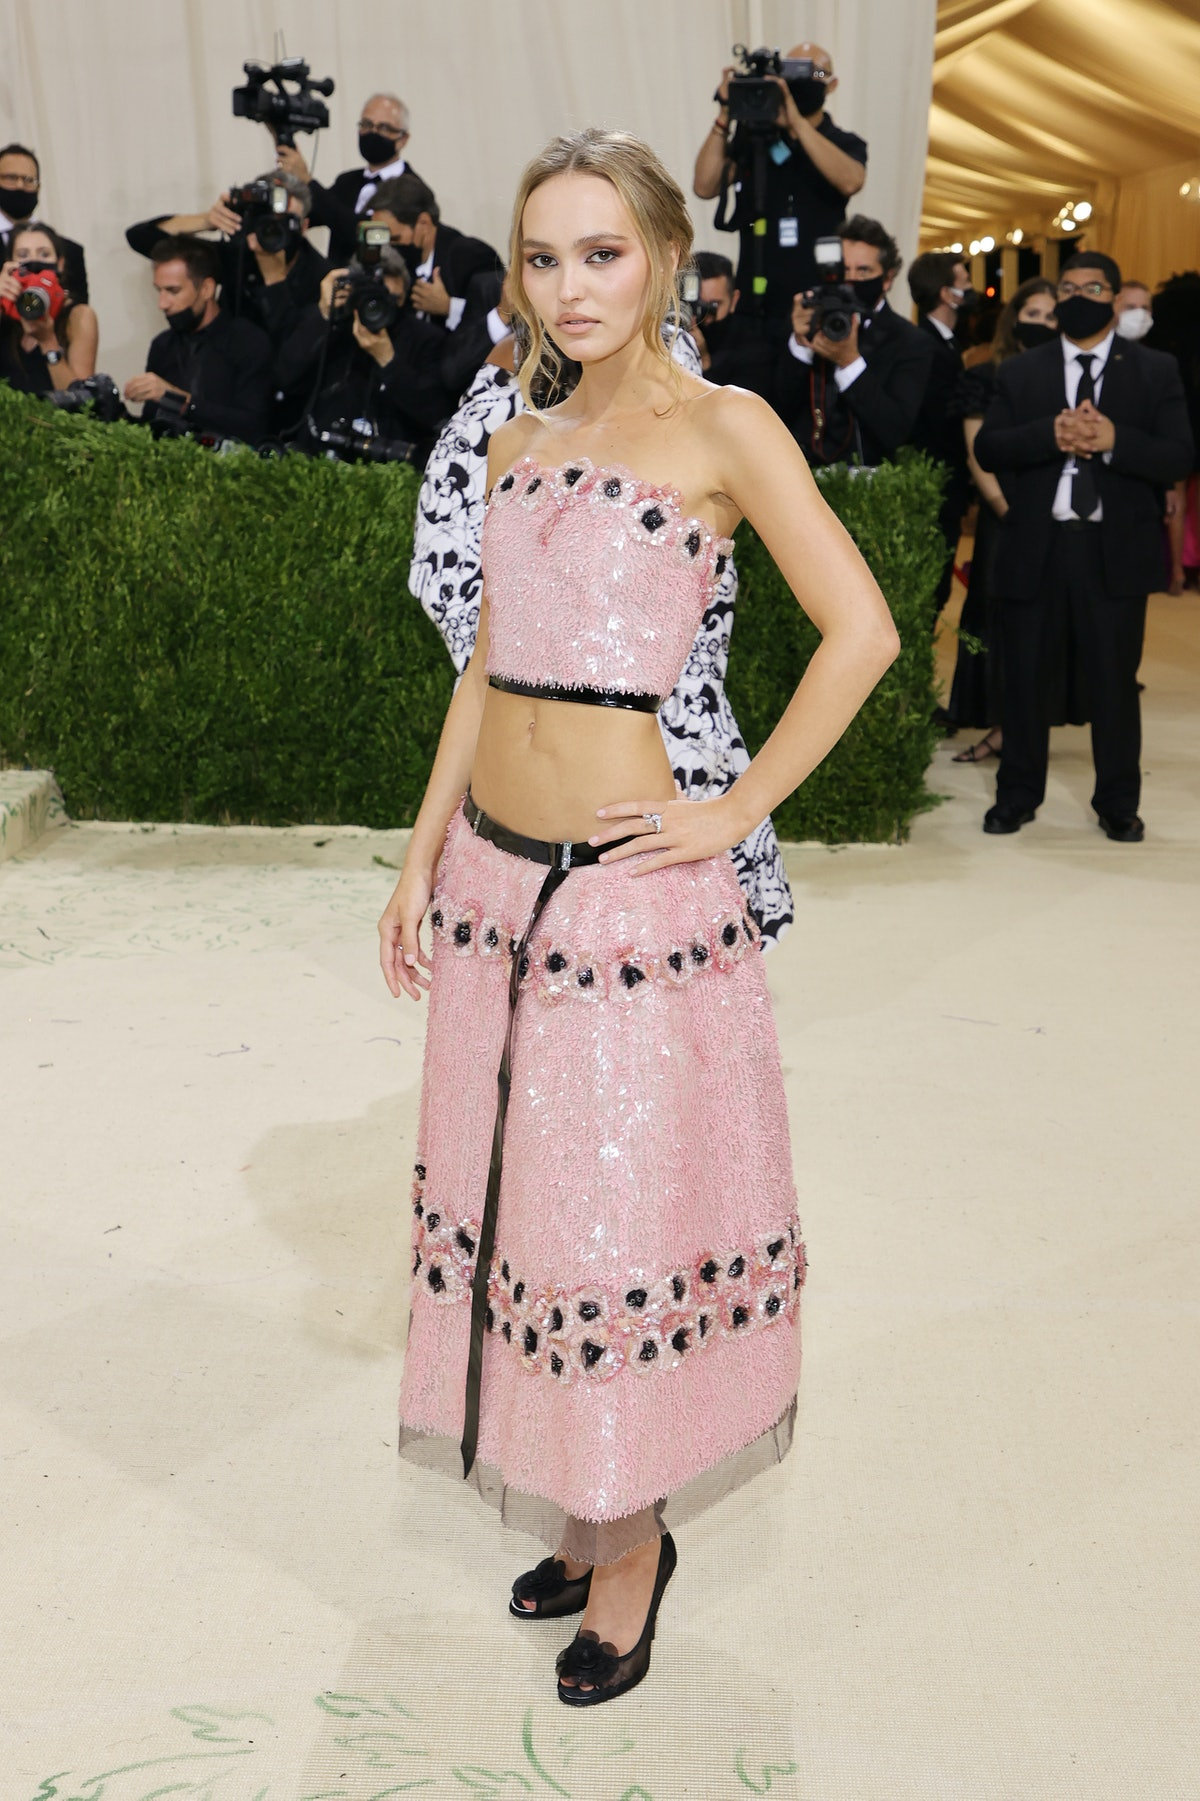 Lily-Rose Depp attends The 2021 Met Gala Celebrating In America: A Lexicon Of Fashion at Metropolita...